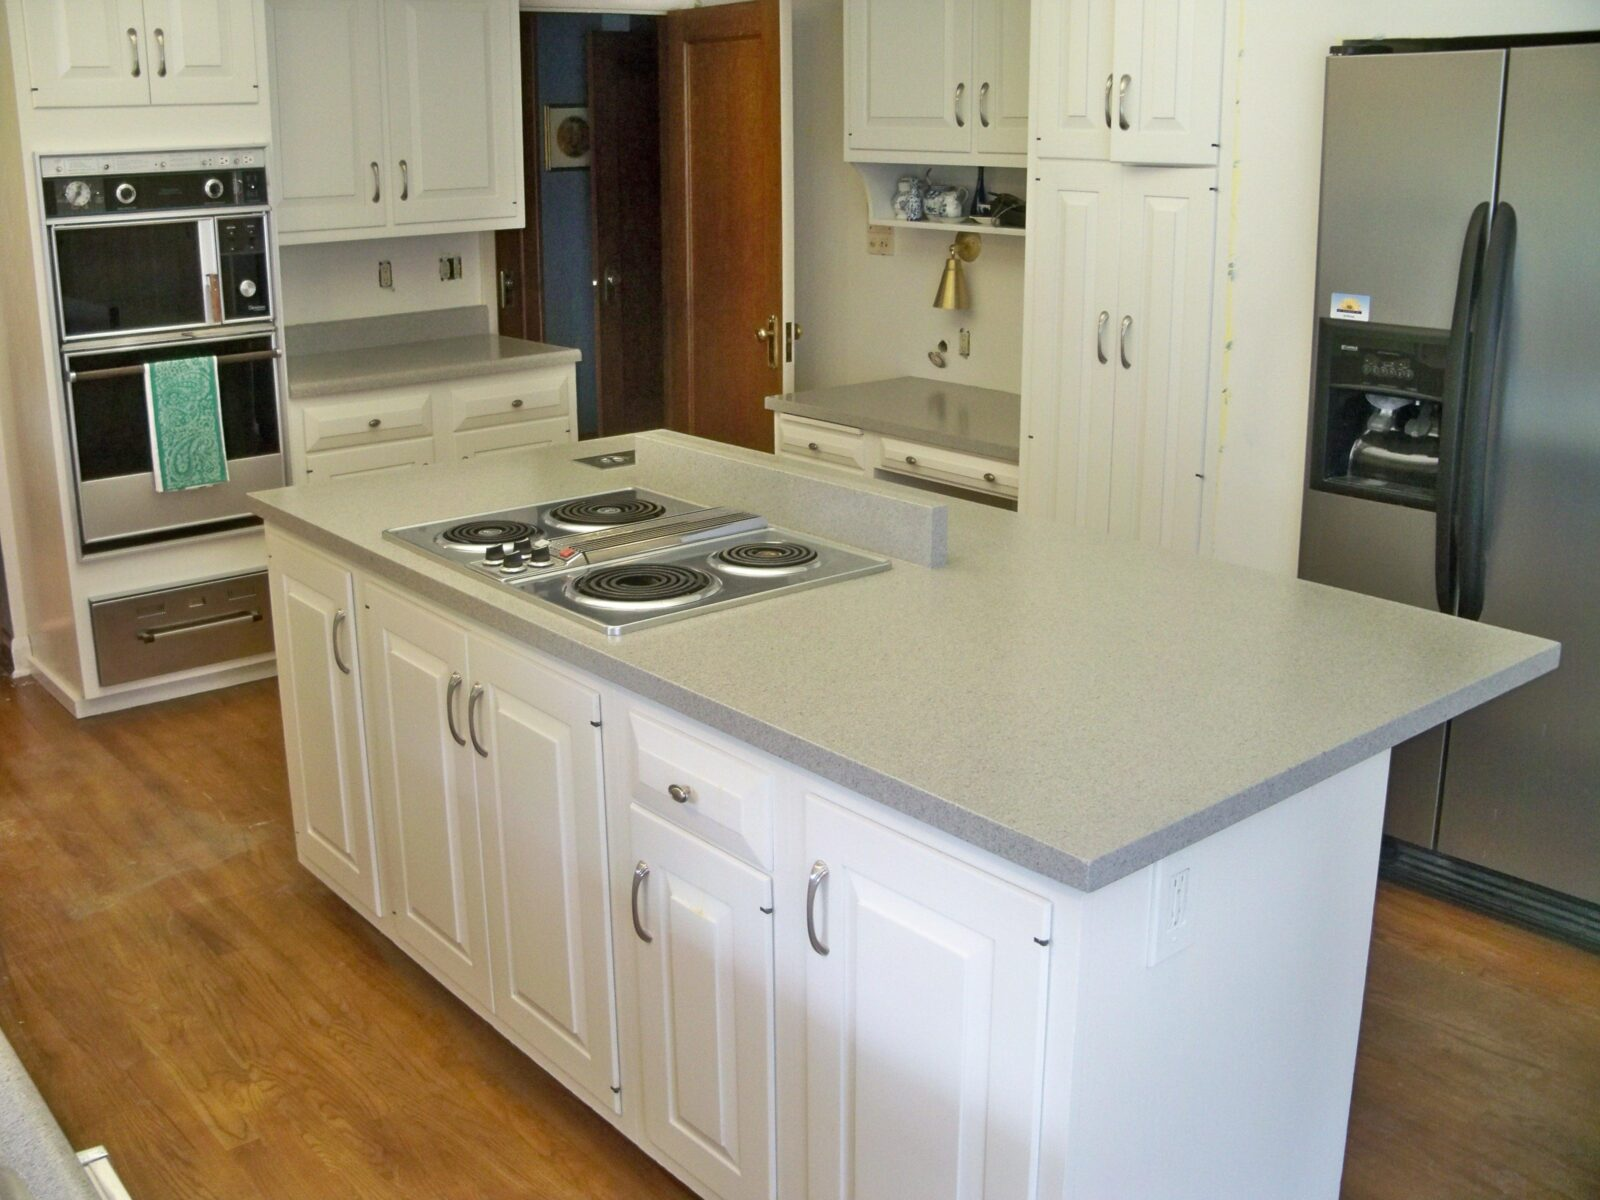 island countertop counter top granite adventures christinas leathered installation tops